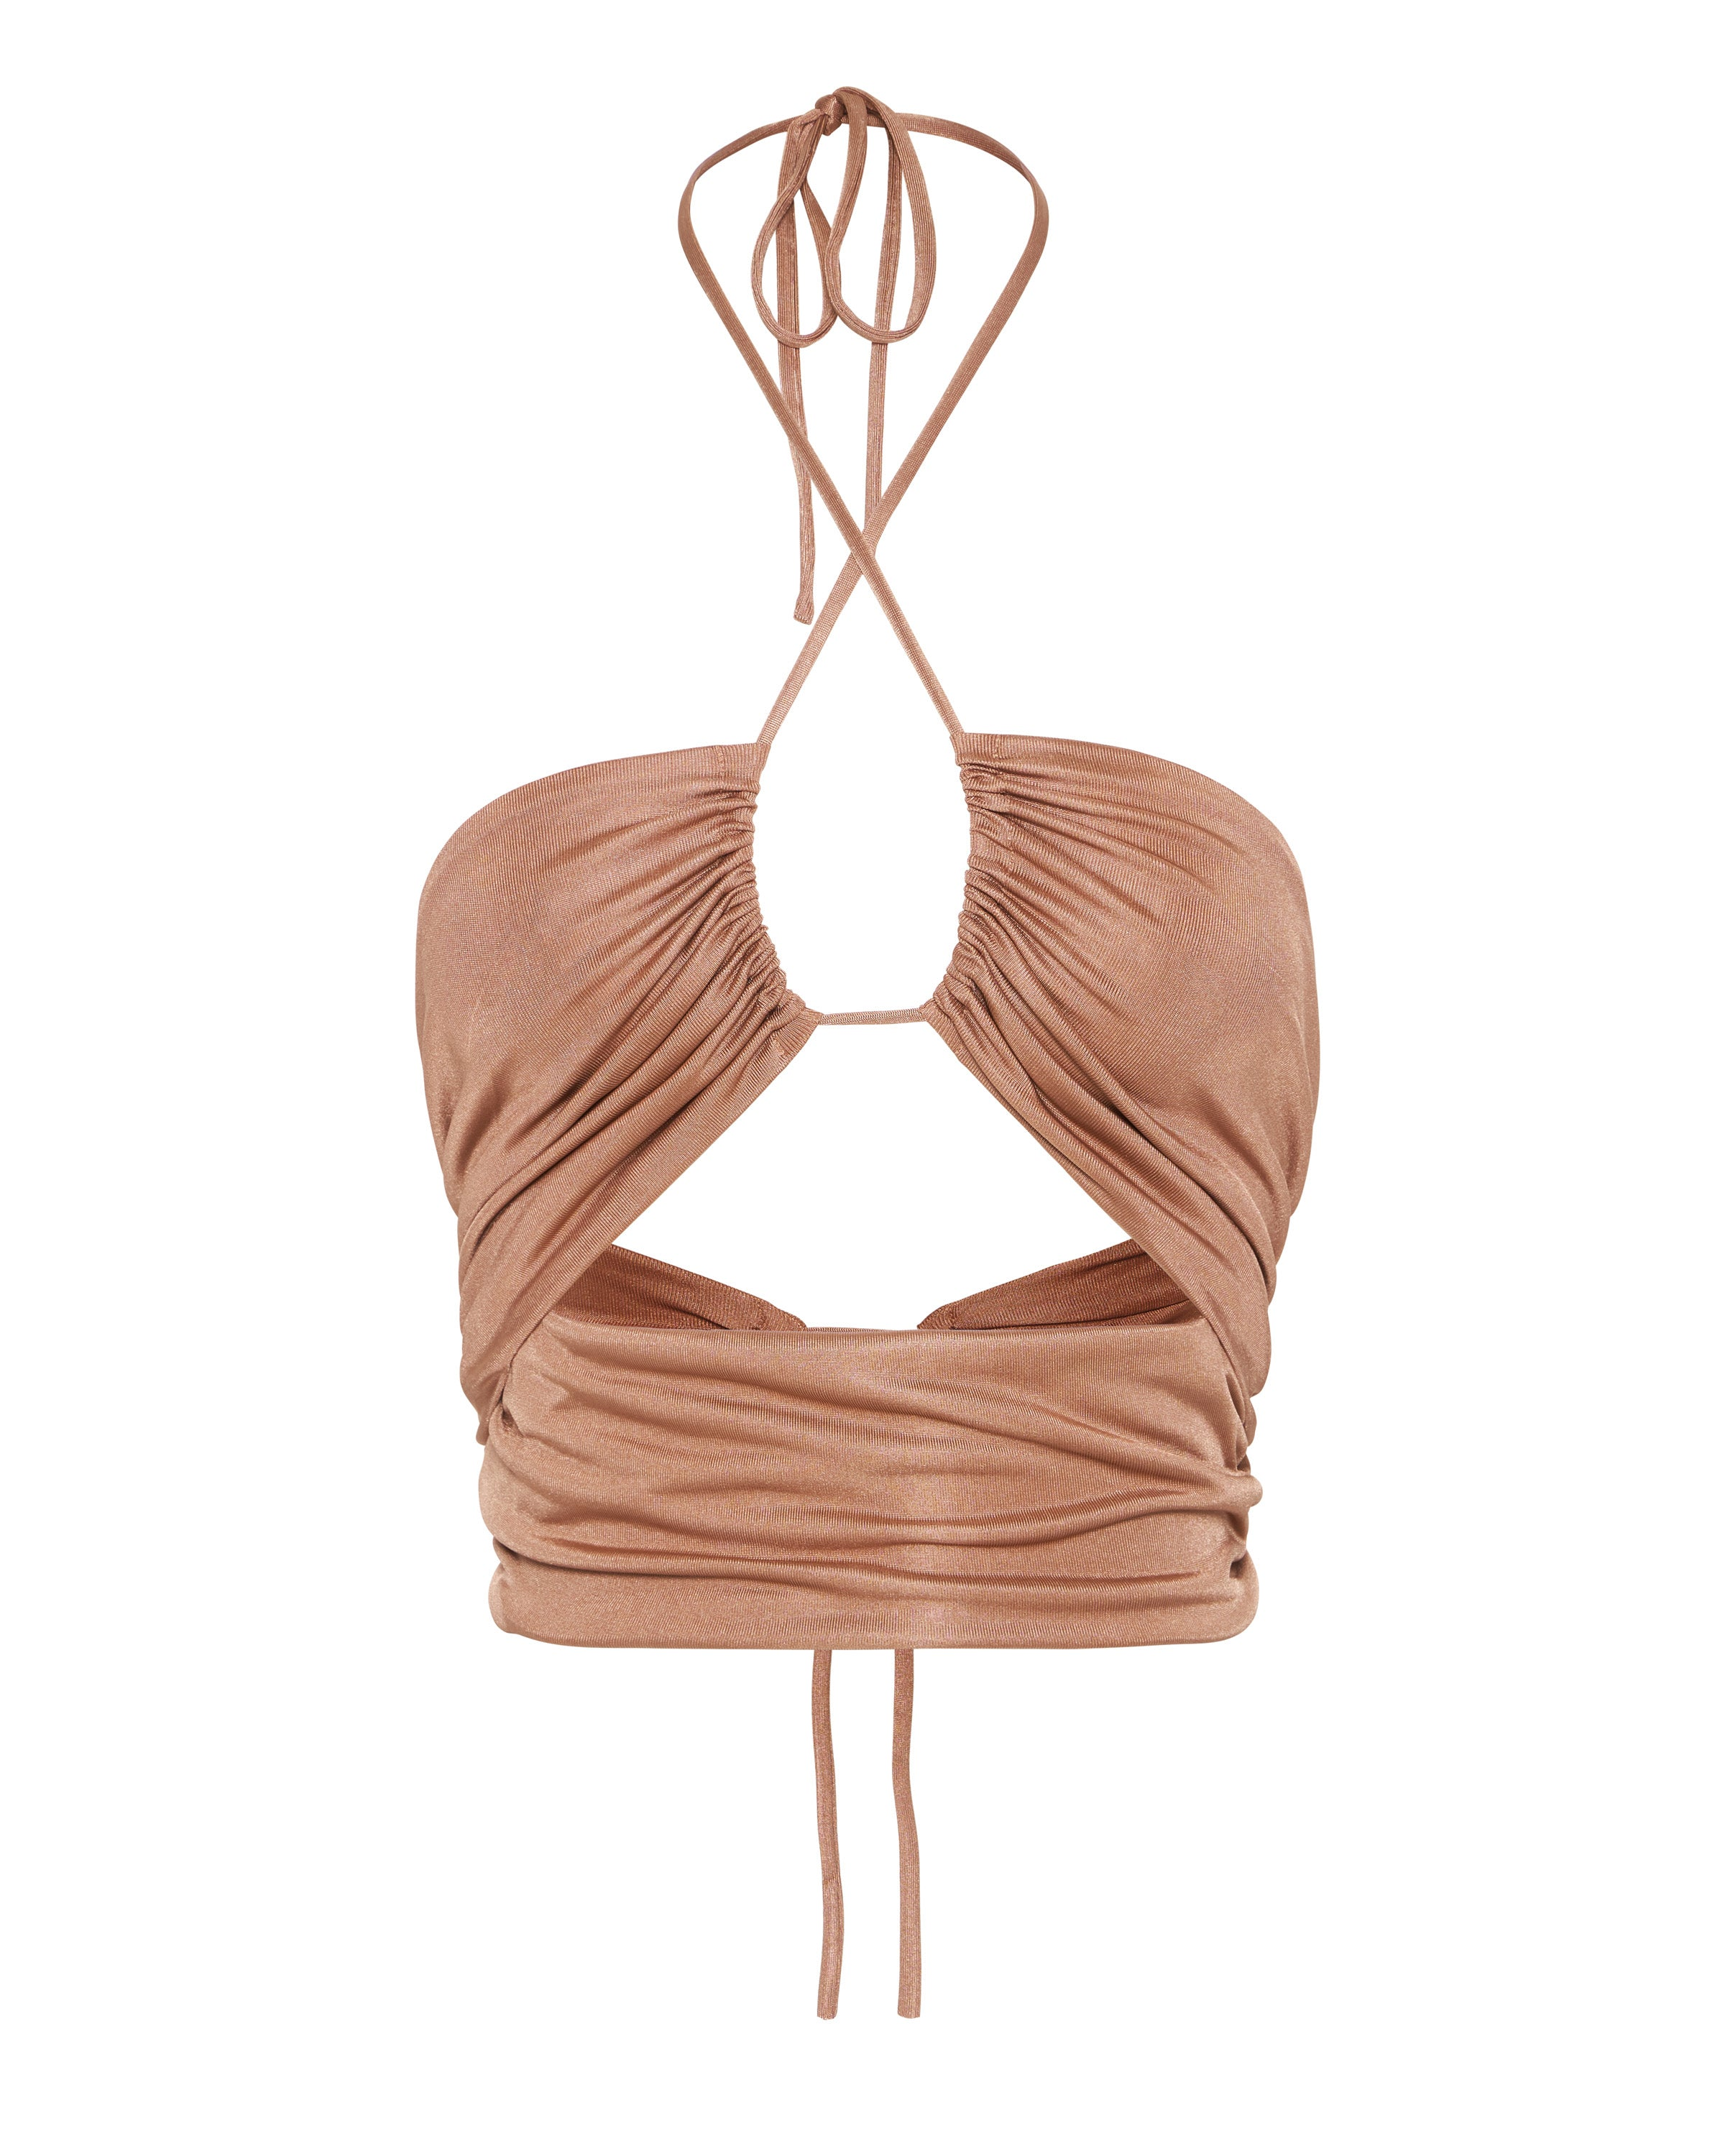 LEAD ON HALTER CROP TOP | BLUSHING